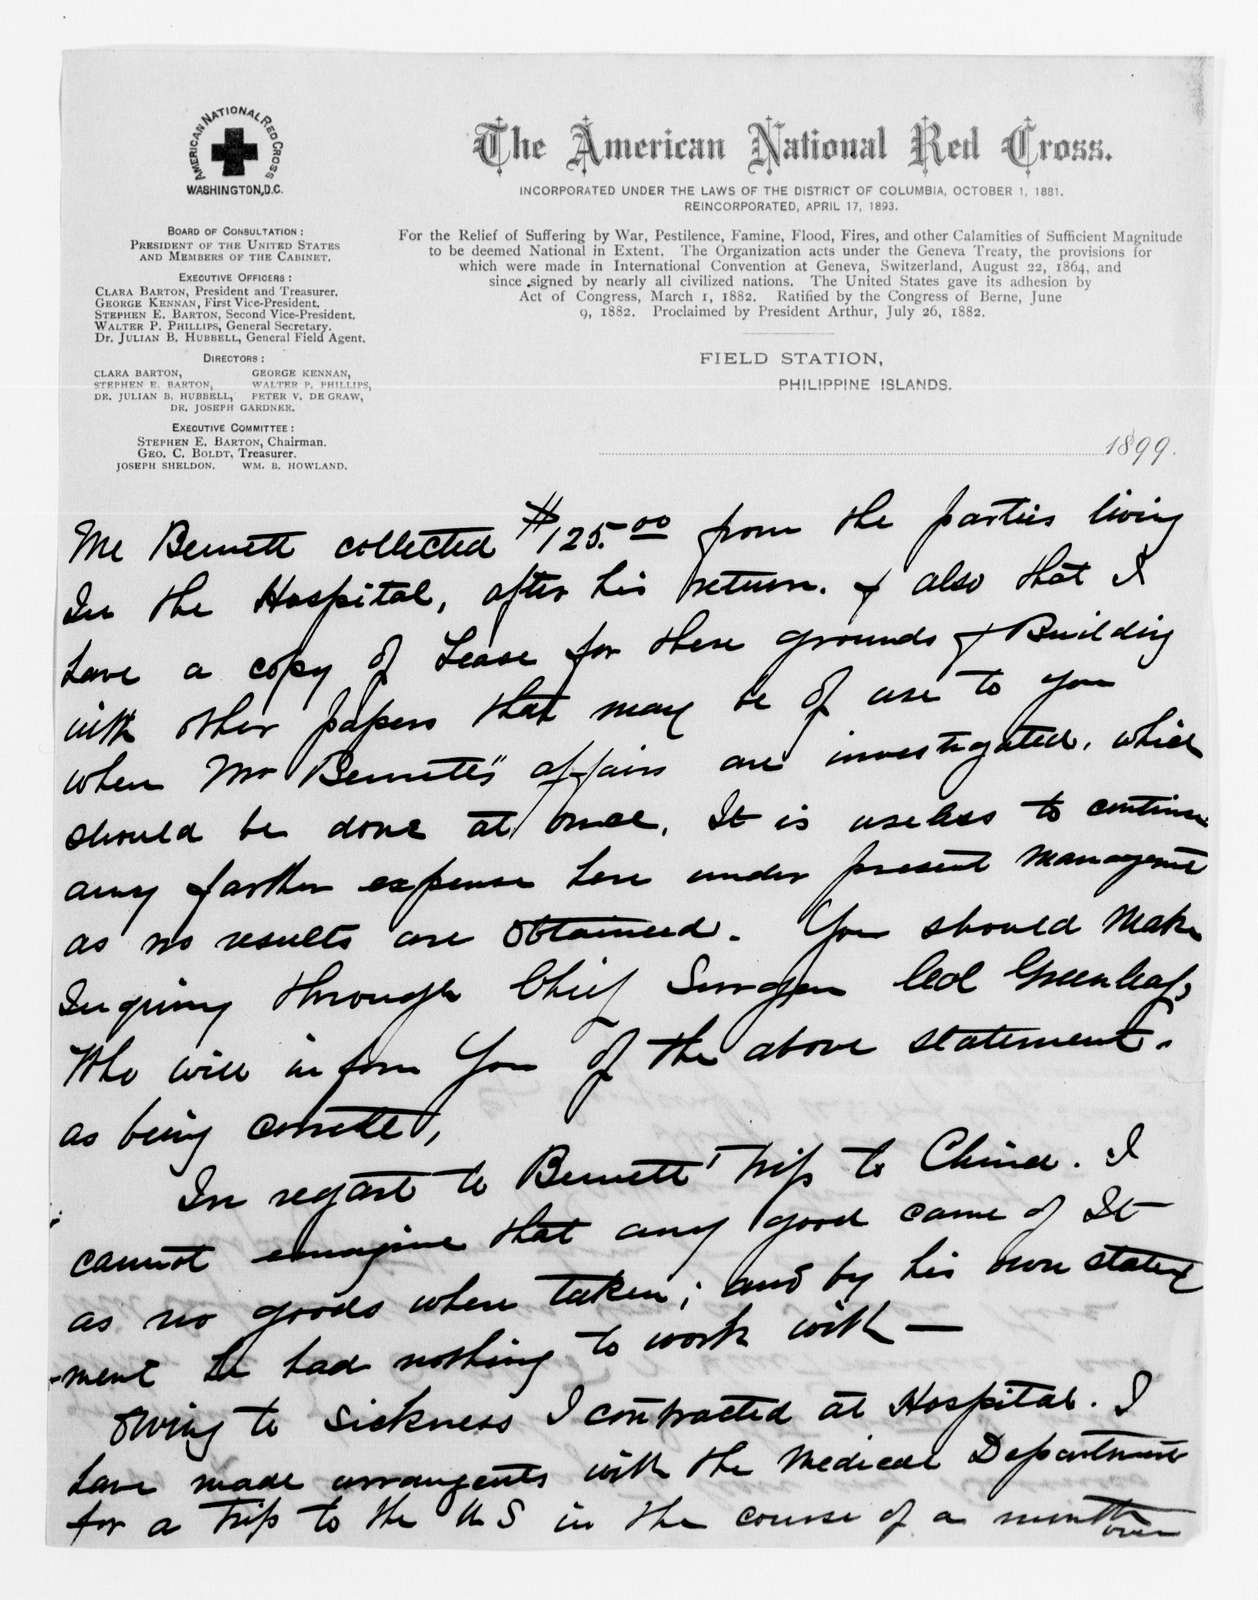 Clara Barton Papers: Red Cross File, 1863-1957; American National Red Cross, 1878-1957; Relief operations; Spanish-American War; Philippine Islands, 1899-1901